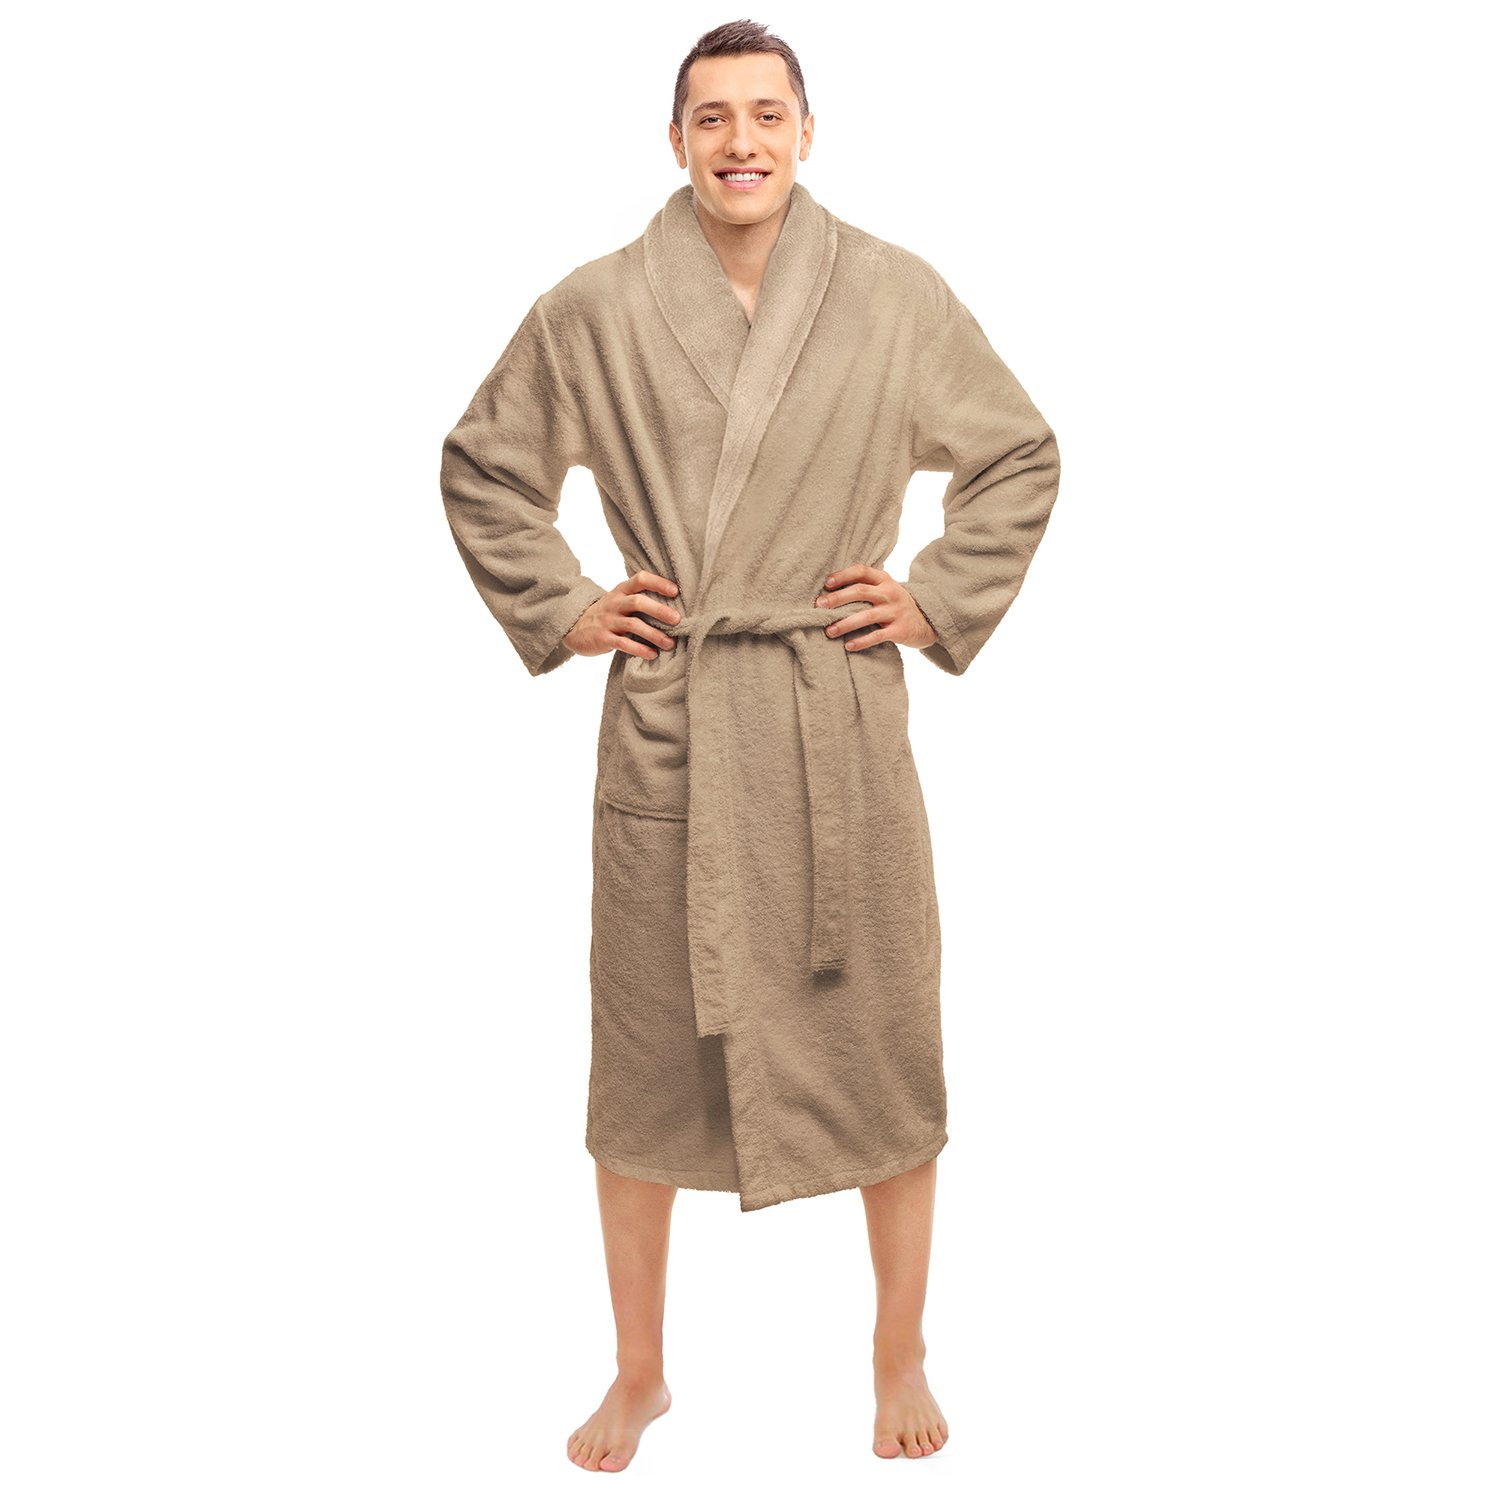 Blue Nile Mills Hotel & Spa Taupe Robe, Plush Terry Weave, 100% Premium Long-Staple Combed Cotton, Unisex Bathrobe for Women and Men, Small Size